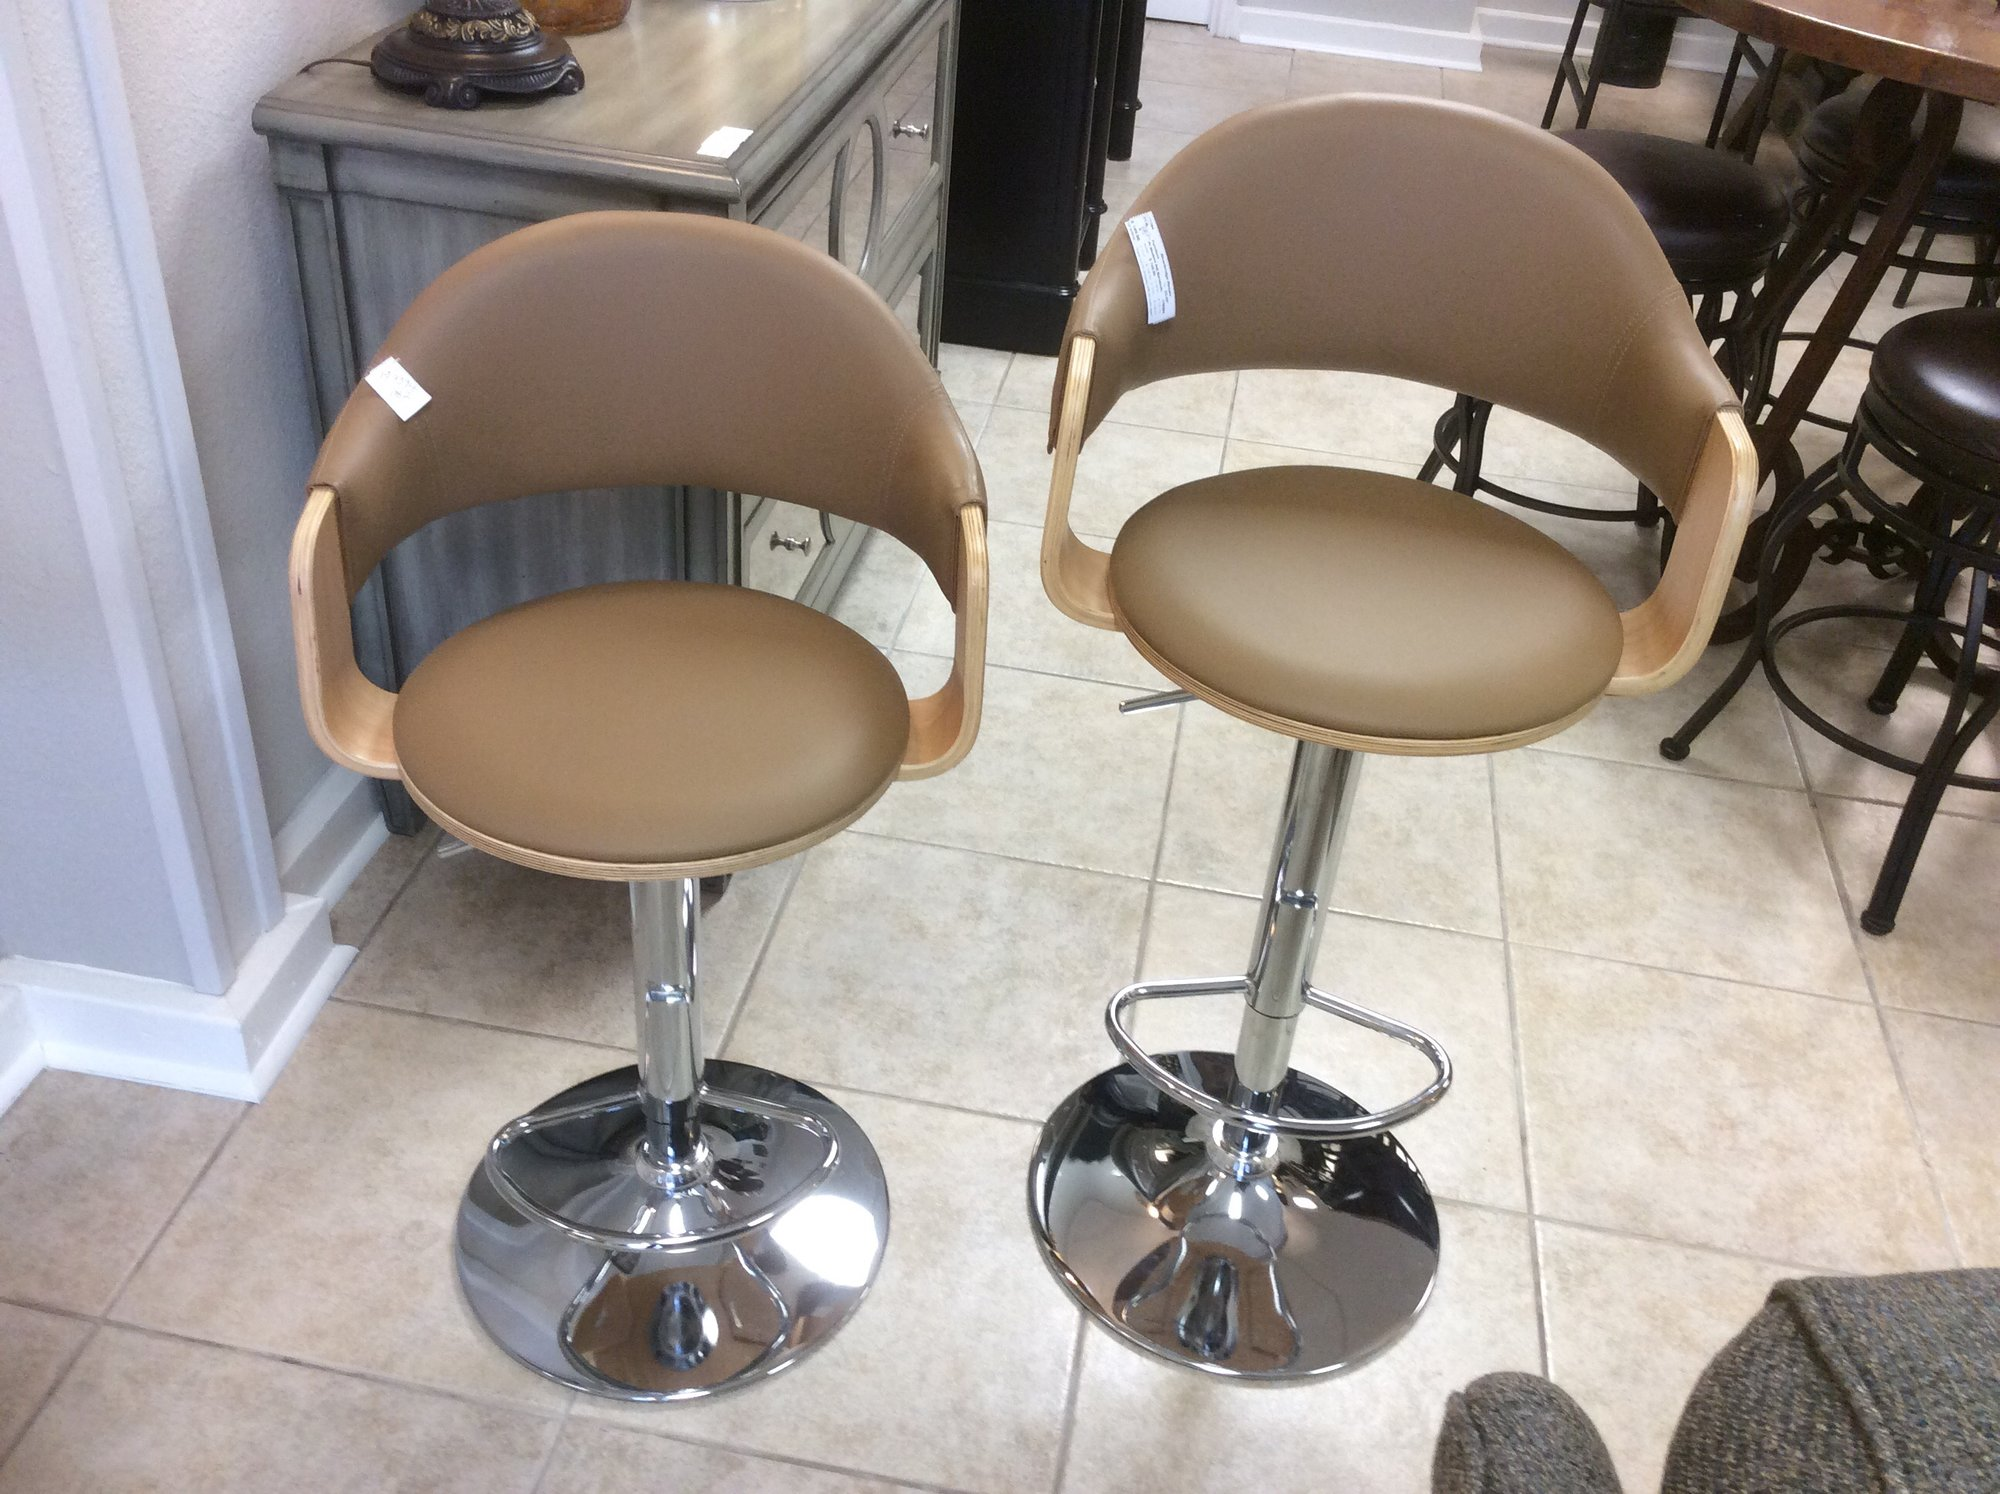 "These ultra-modern, adjustable barstools look brand new. In their lowest position, they measure 23"" tall, and in their highest position, they are 32"" tall. Great price for so much versatility!"